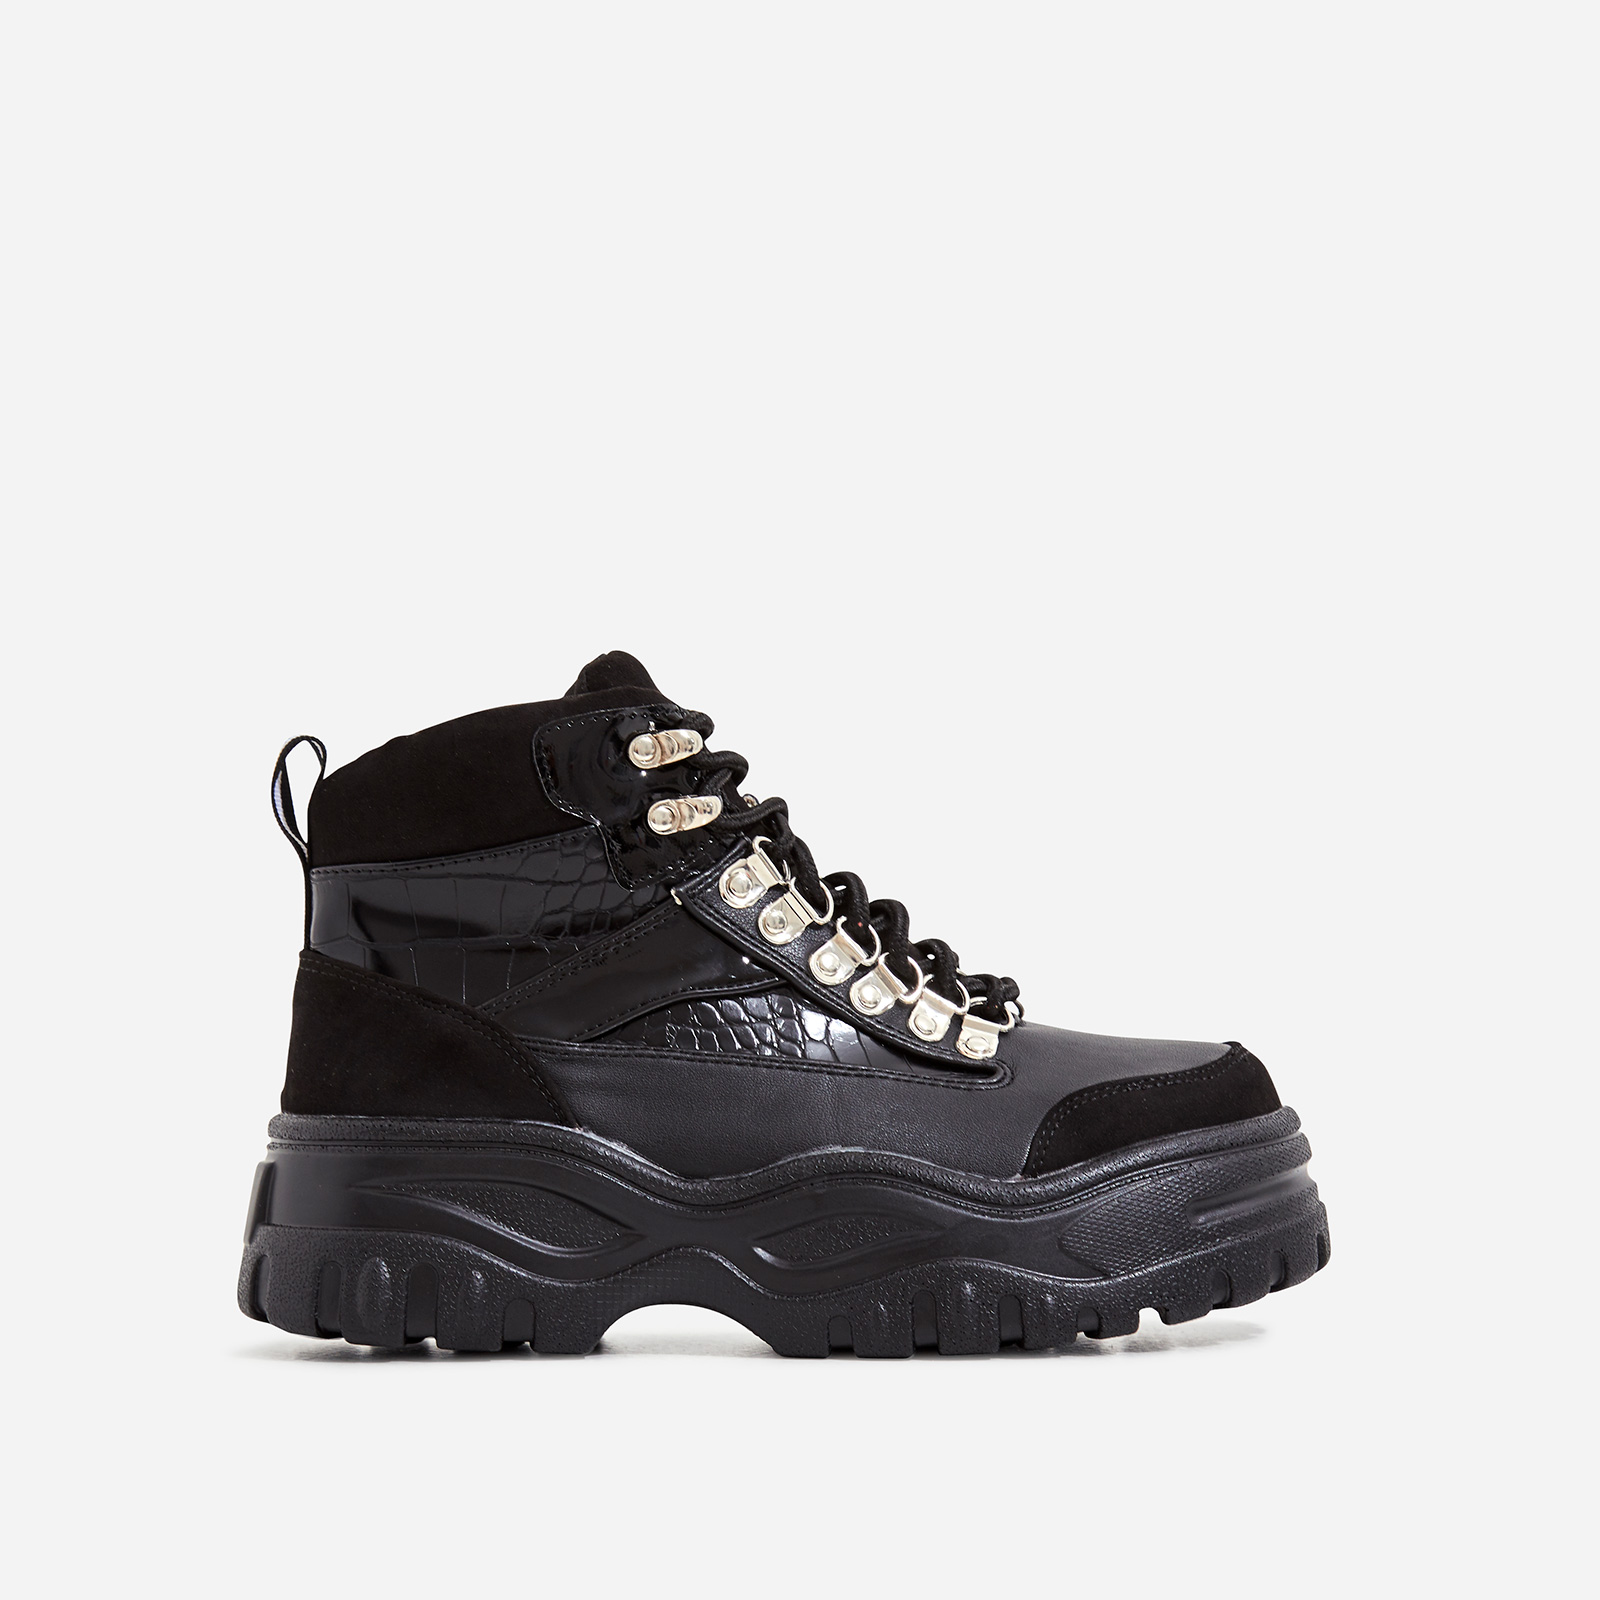 Hammer Lace Up Chunky Sole Ankle Hiker Boot In Black Croc Print Faux Leather